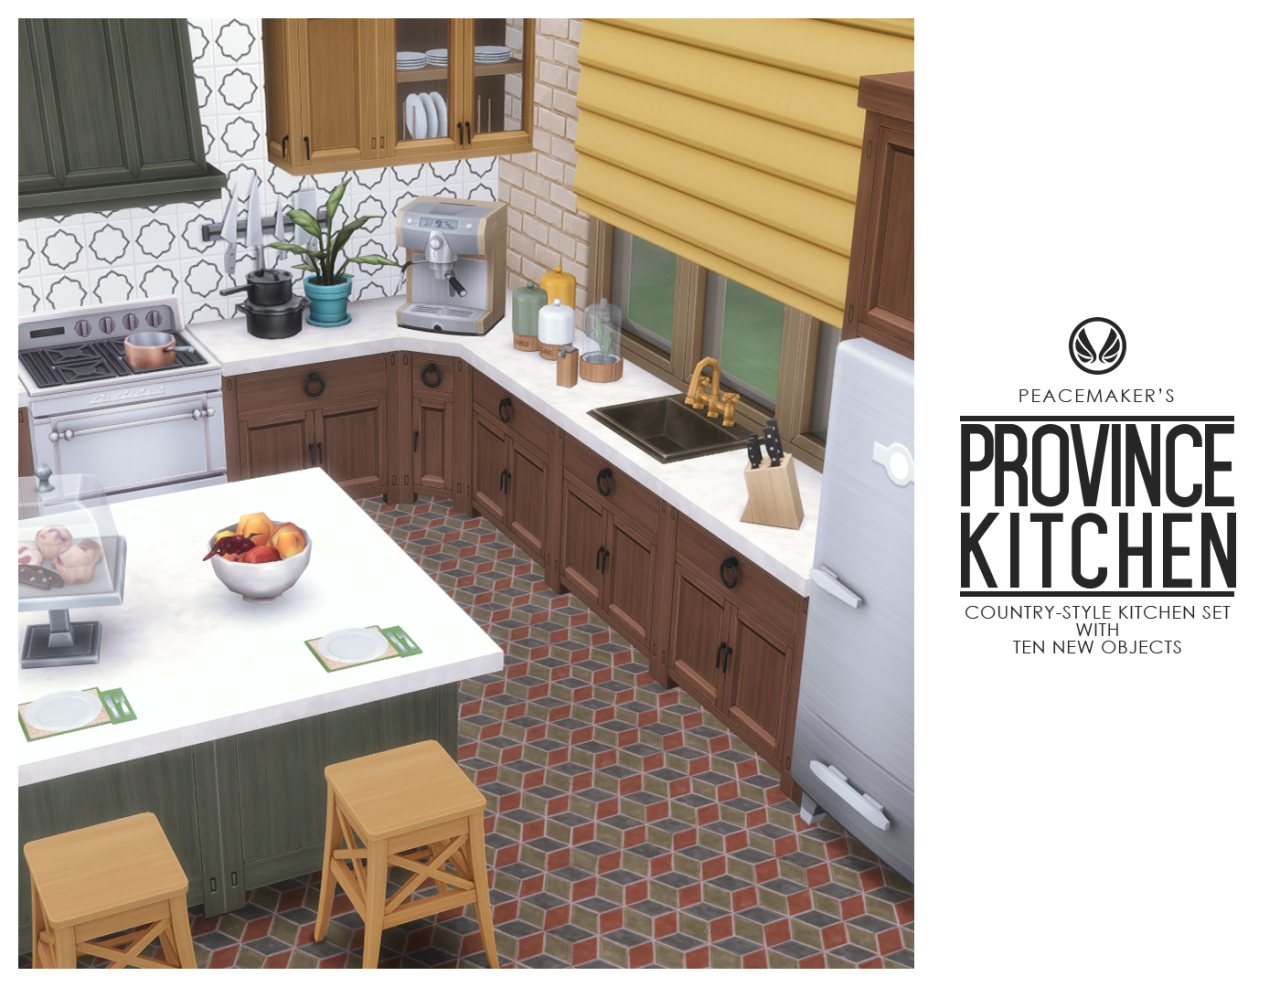 Source: Tumblr | Kitchen Set | Sims 4 | TS4 | Maxis Match ...